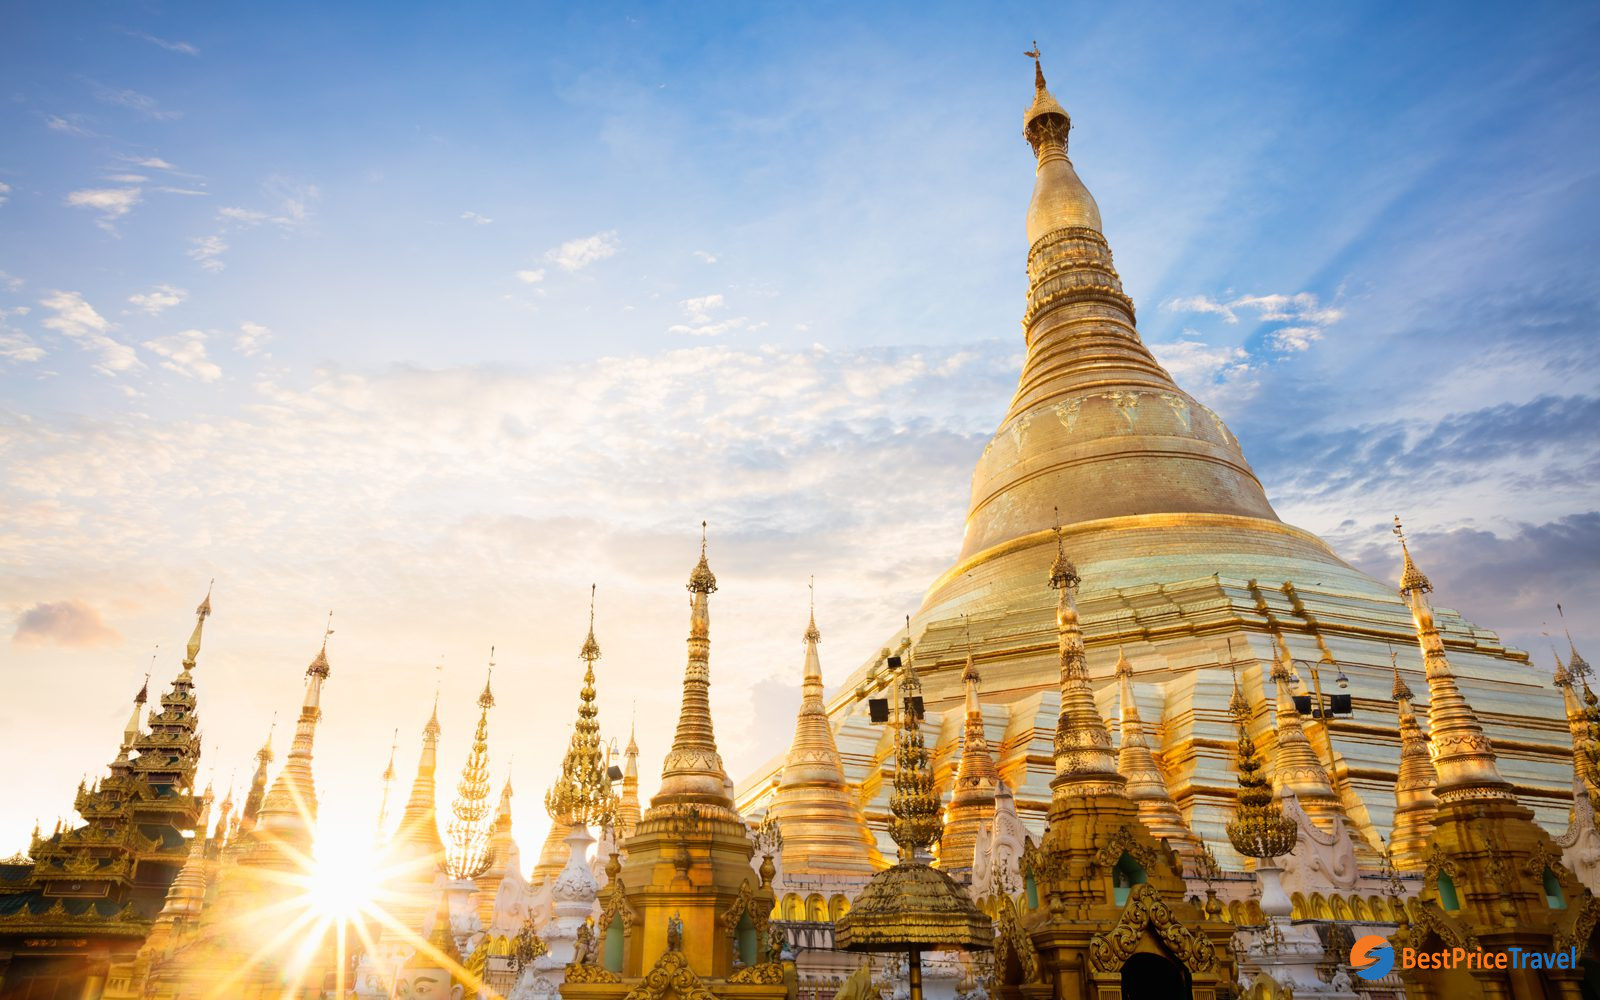 Sweet sunset with floating clouds over dreamy Shwedagon Pagoda